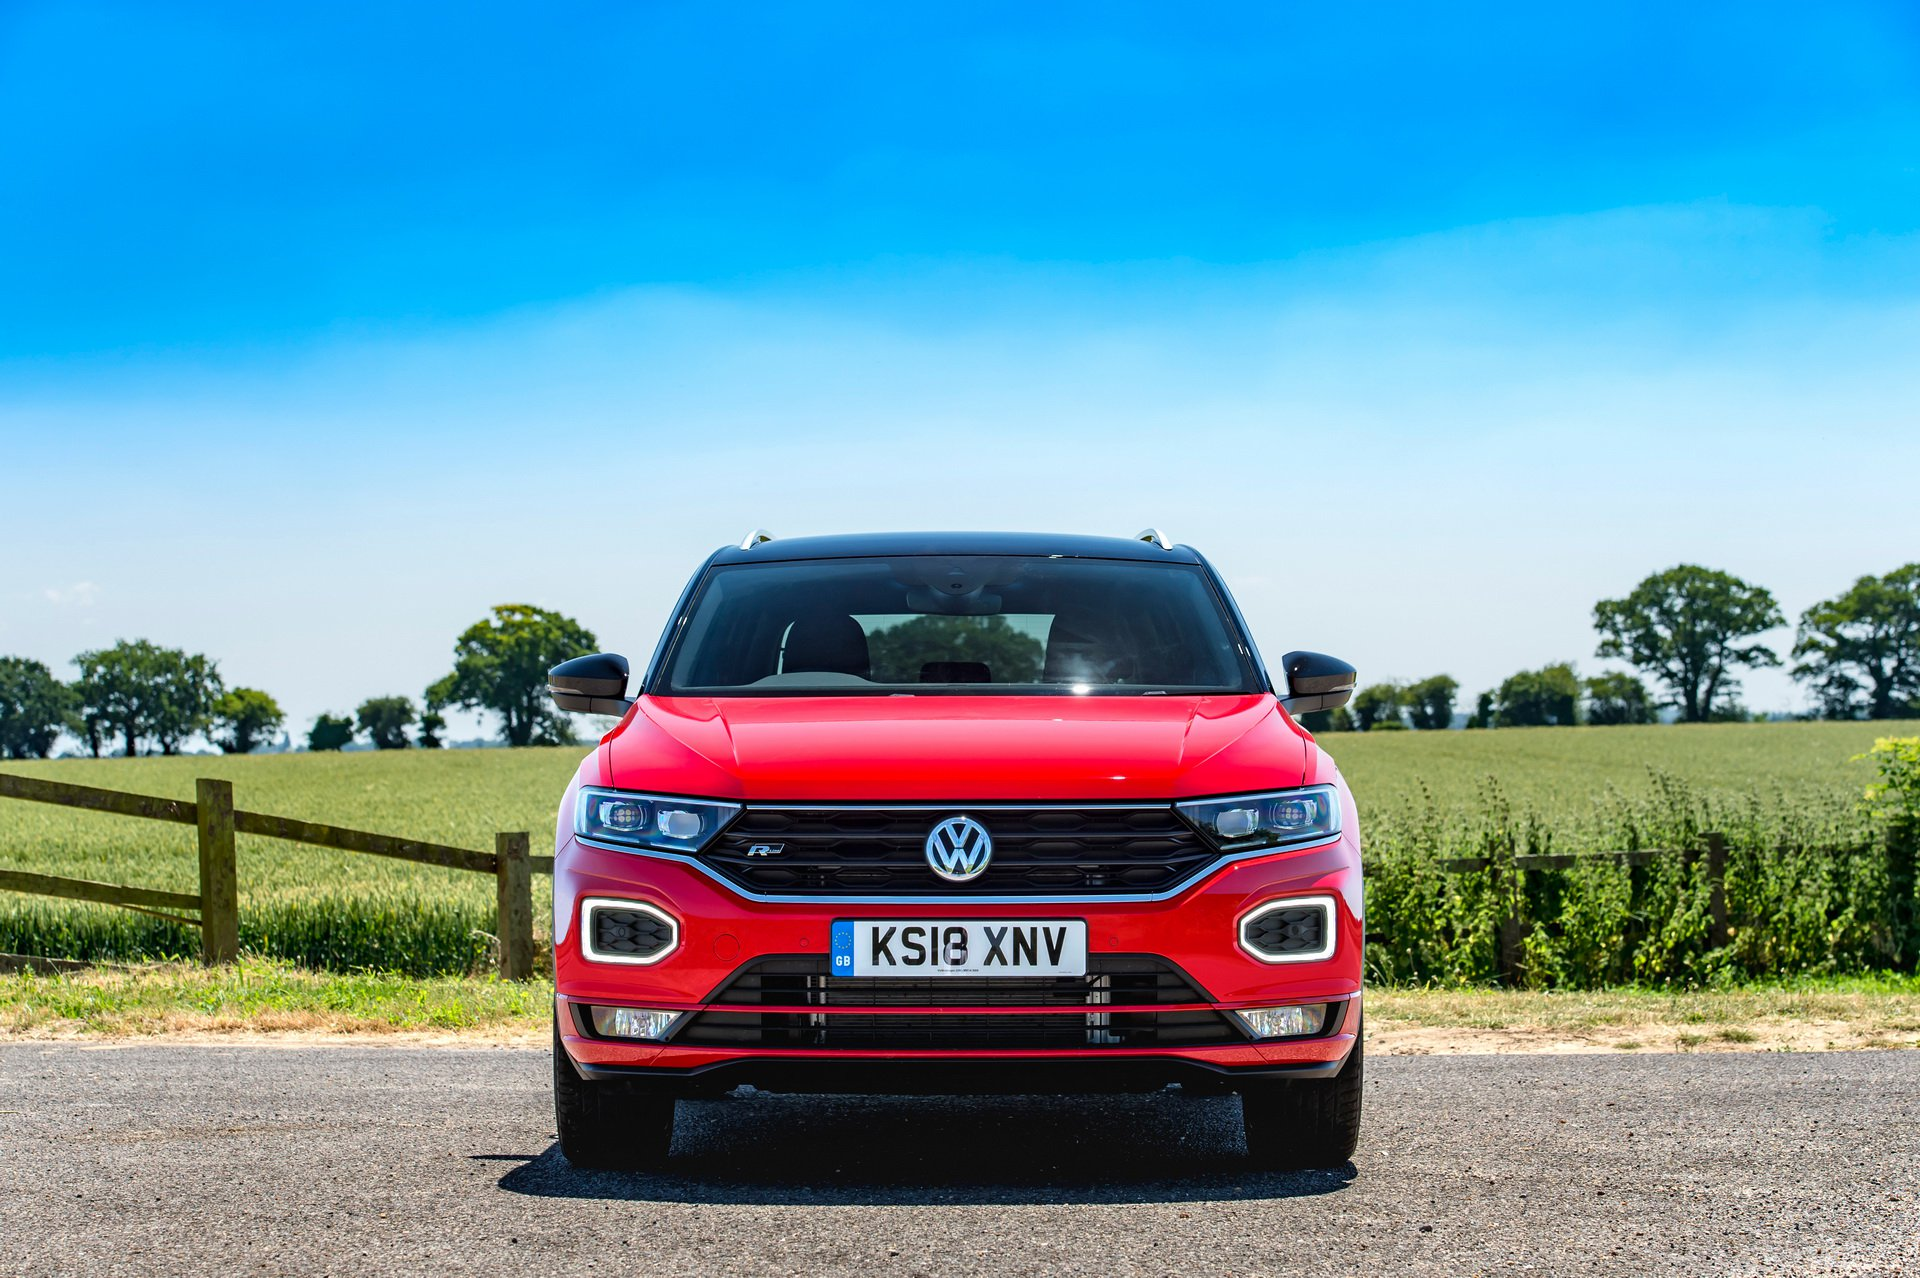 volkswagen t roc 1 6 tdi with 115 hp launched in britain. Black Bedroom Furniture Sets. Home Design Ideas